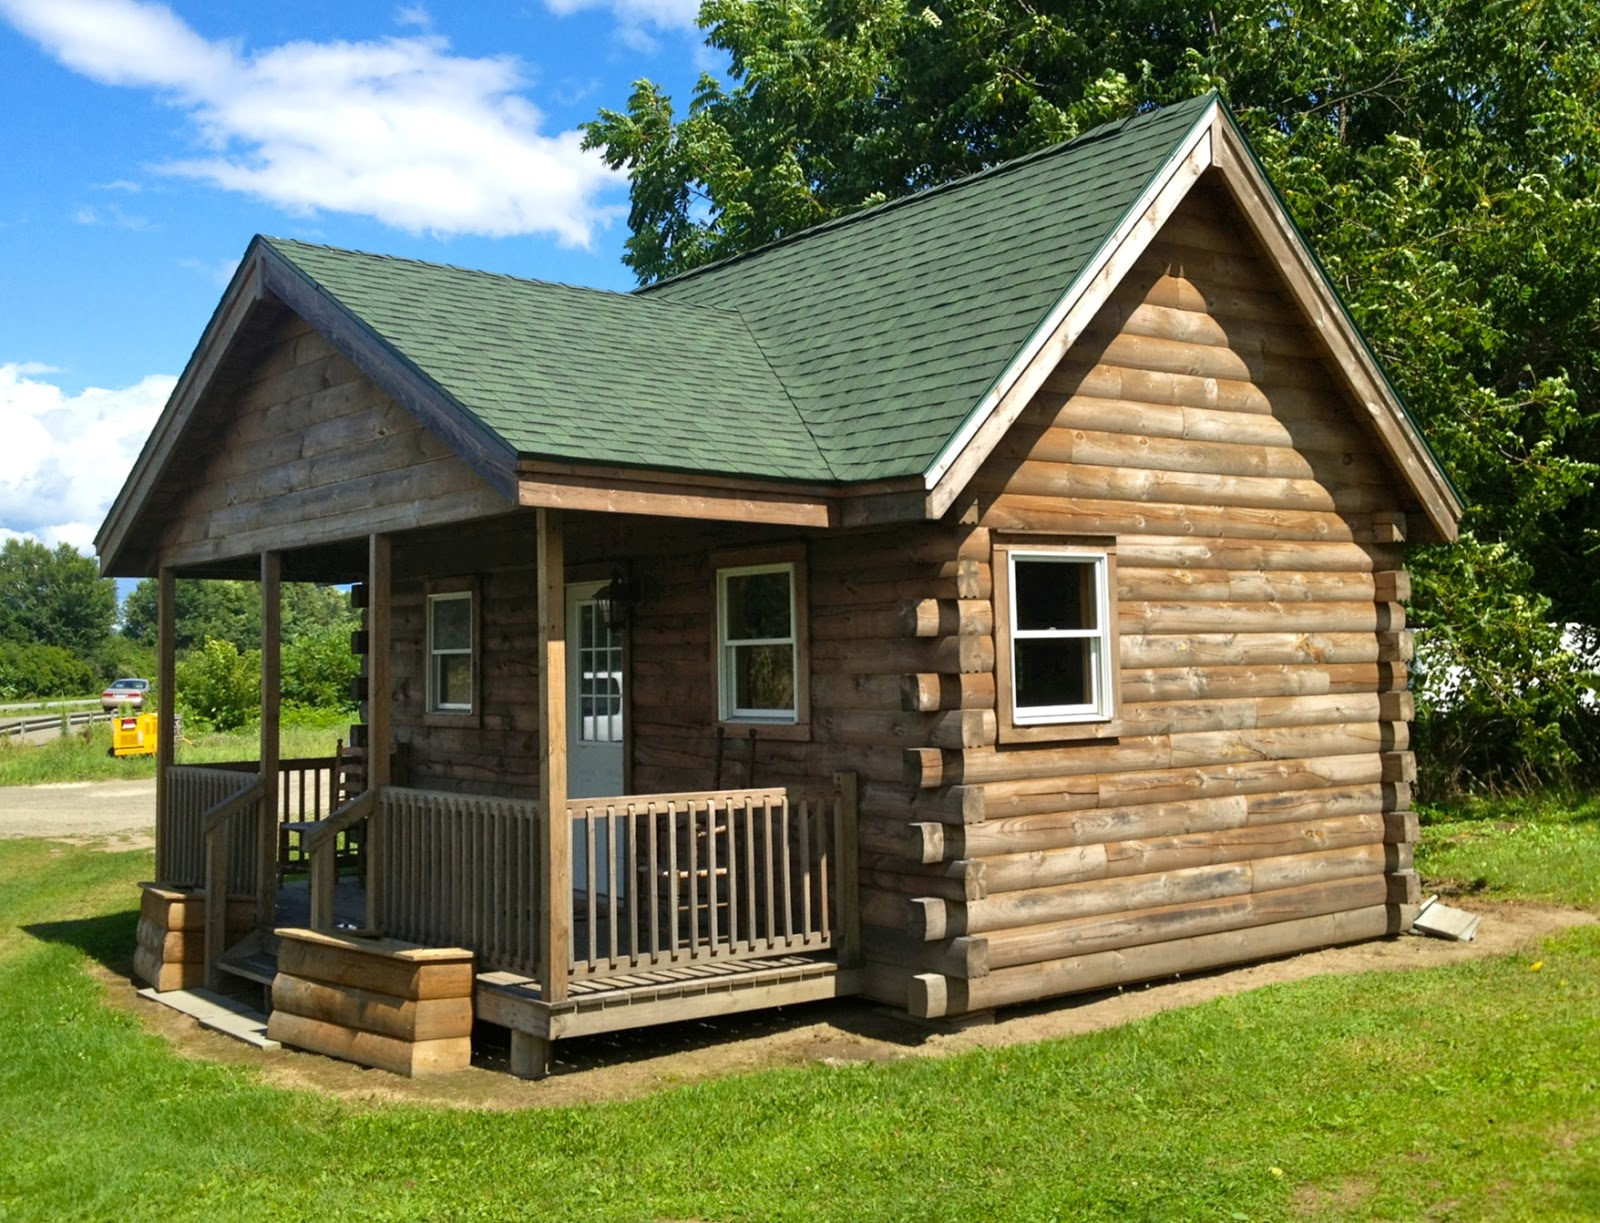 Small Scale Homes Tiny Home Near Binghamton Ny